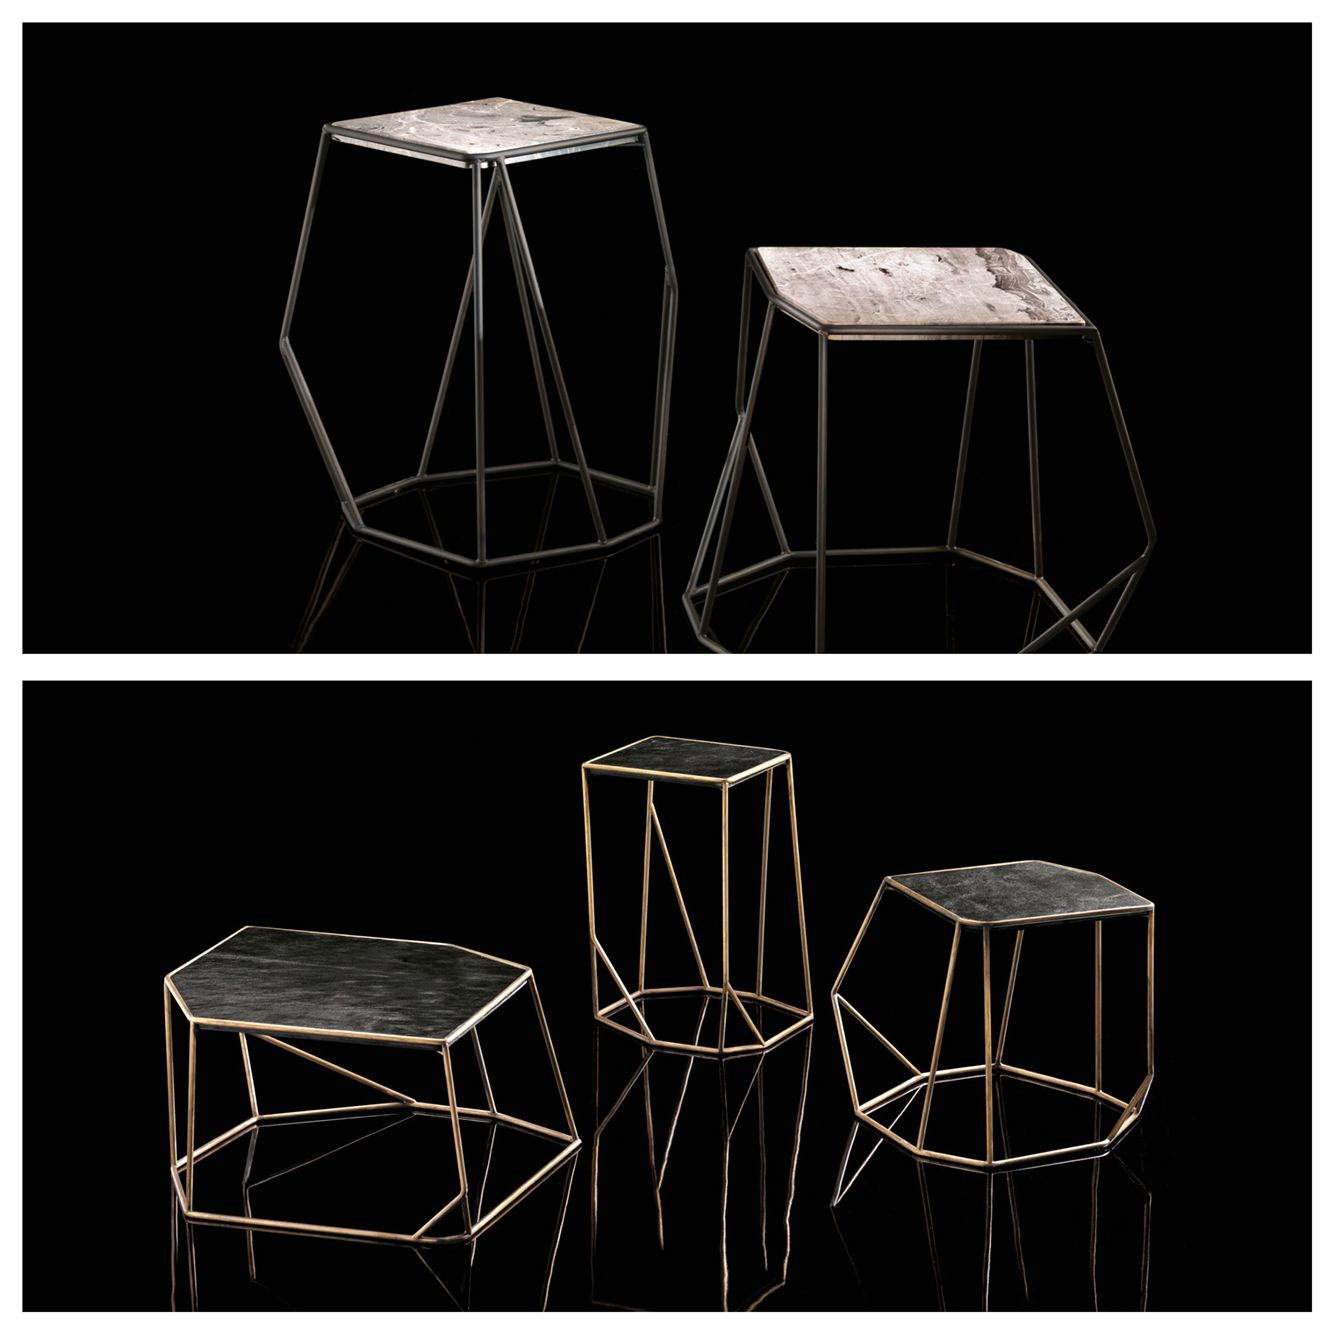 Henge, made in Italy: W-table, project by Massimo Castagna.